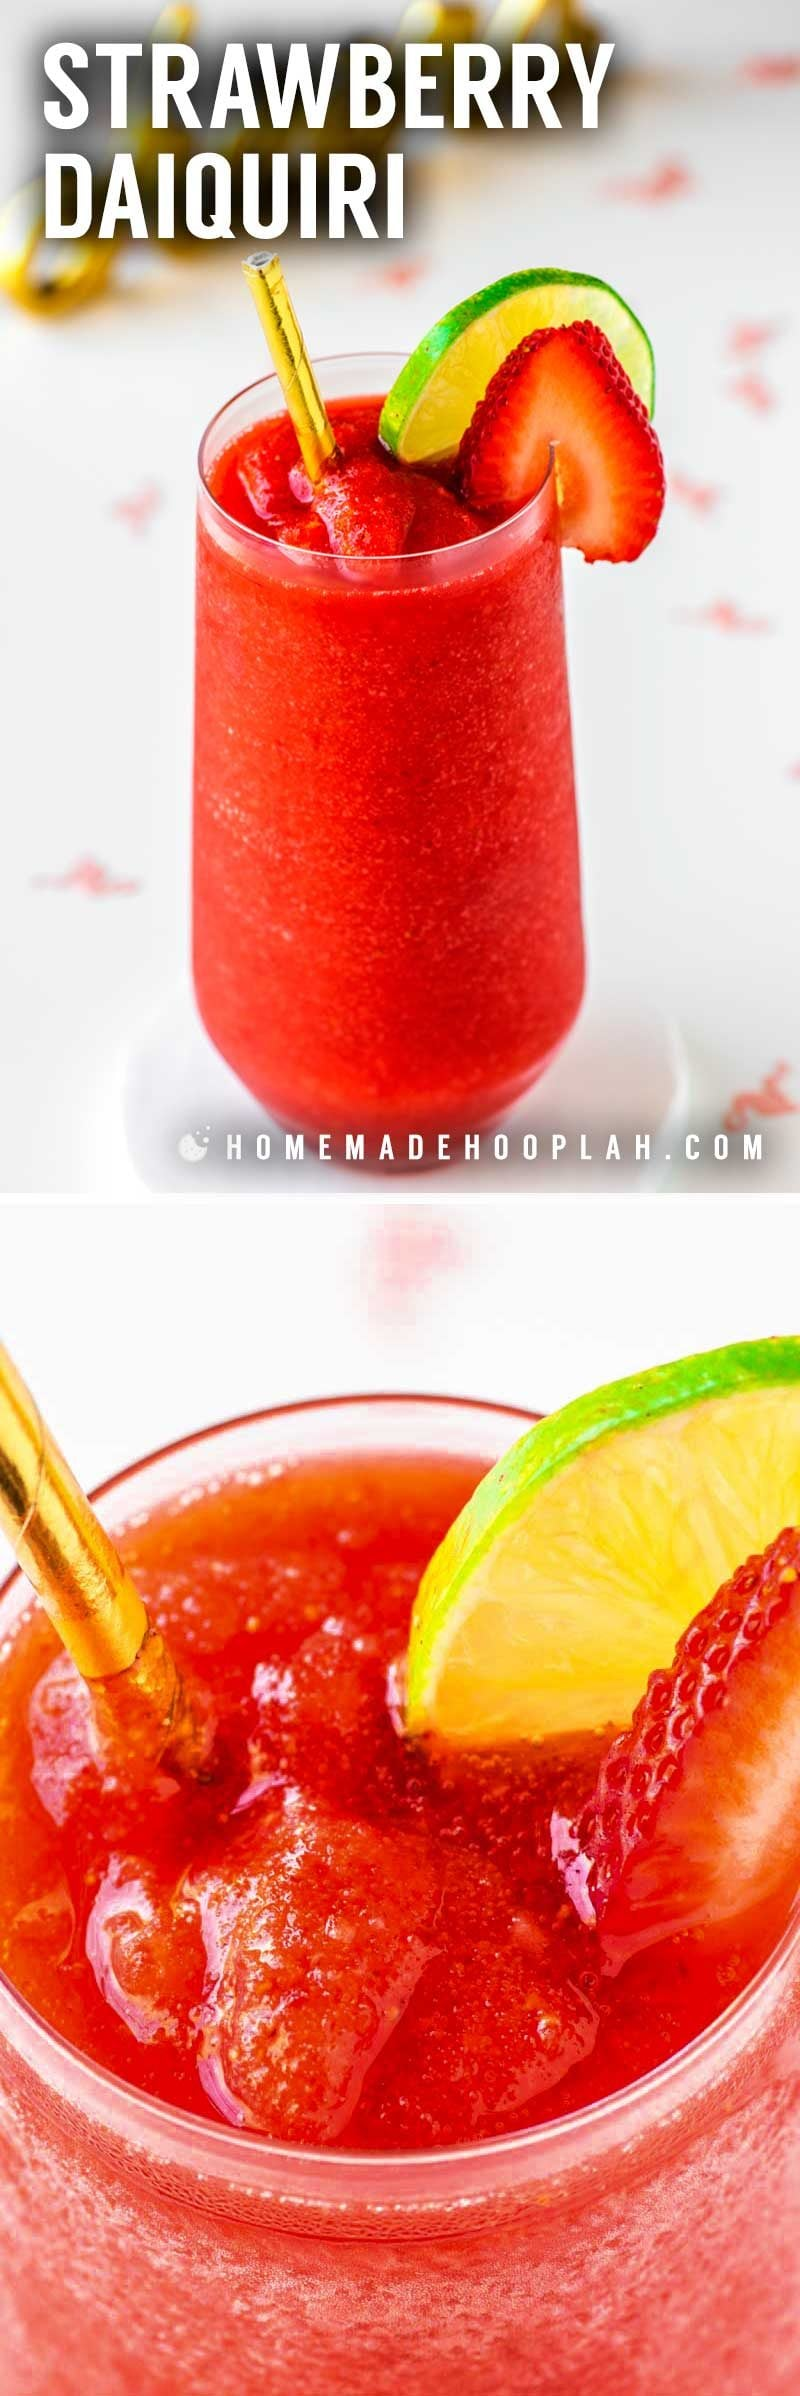 Strawberry Daiquiri! With just four simple ingredients you can skip the mix and make fresh strawberry daiquiris at home. Perfect for cooling down in warmer weather and always a hit at parties! | HomemadeHooplah.com